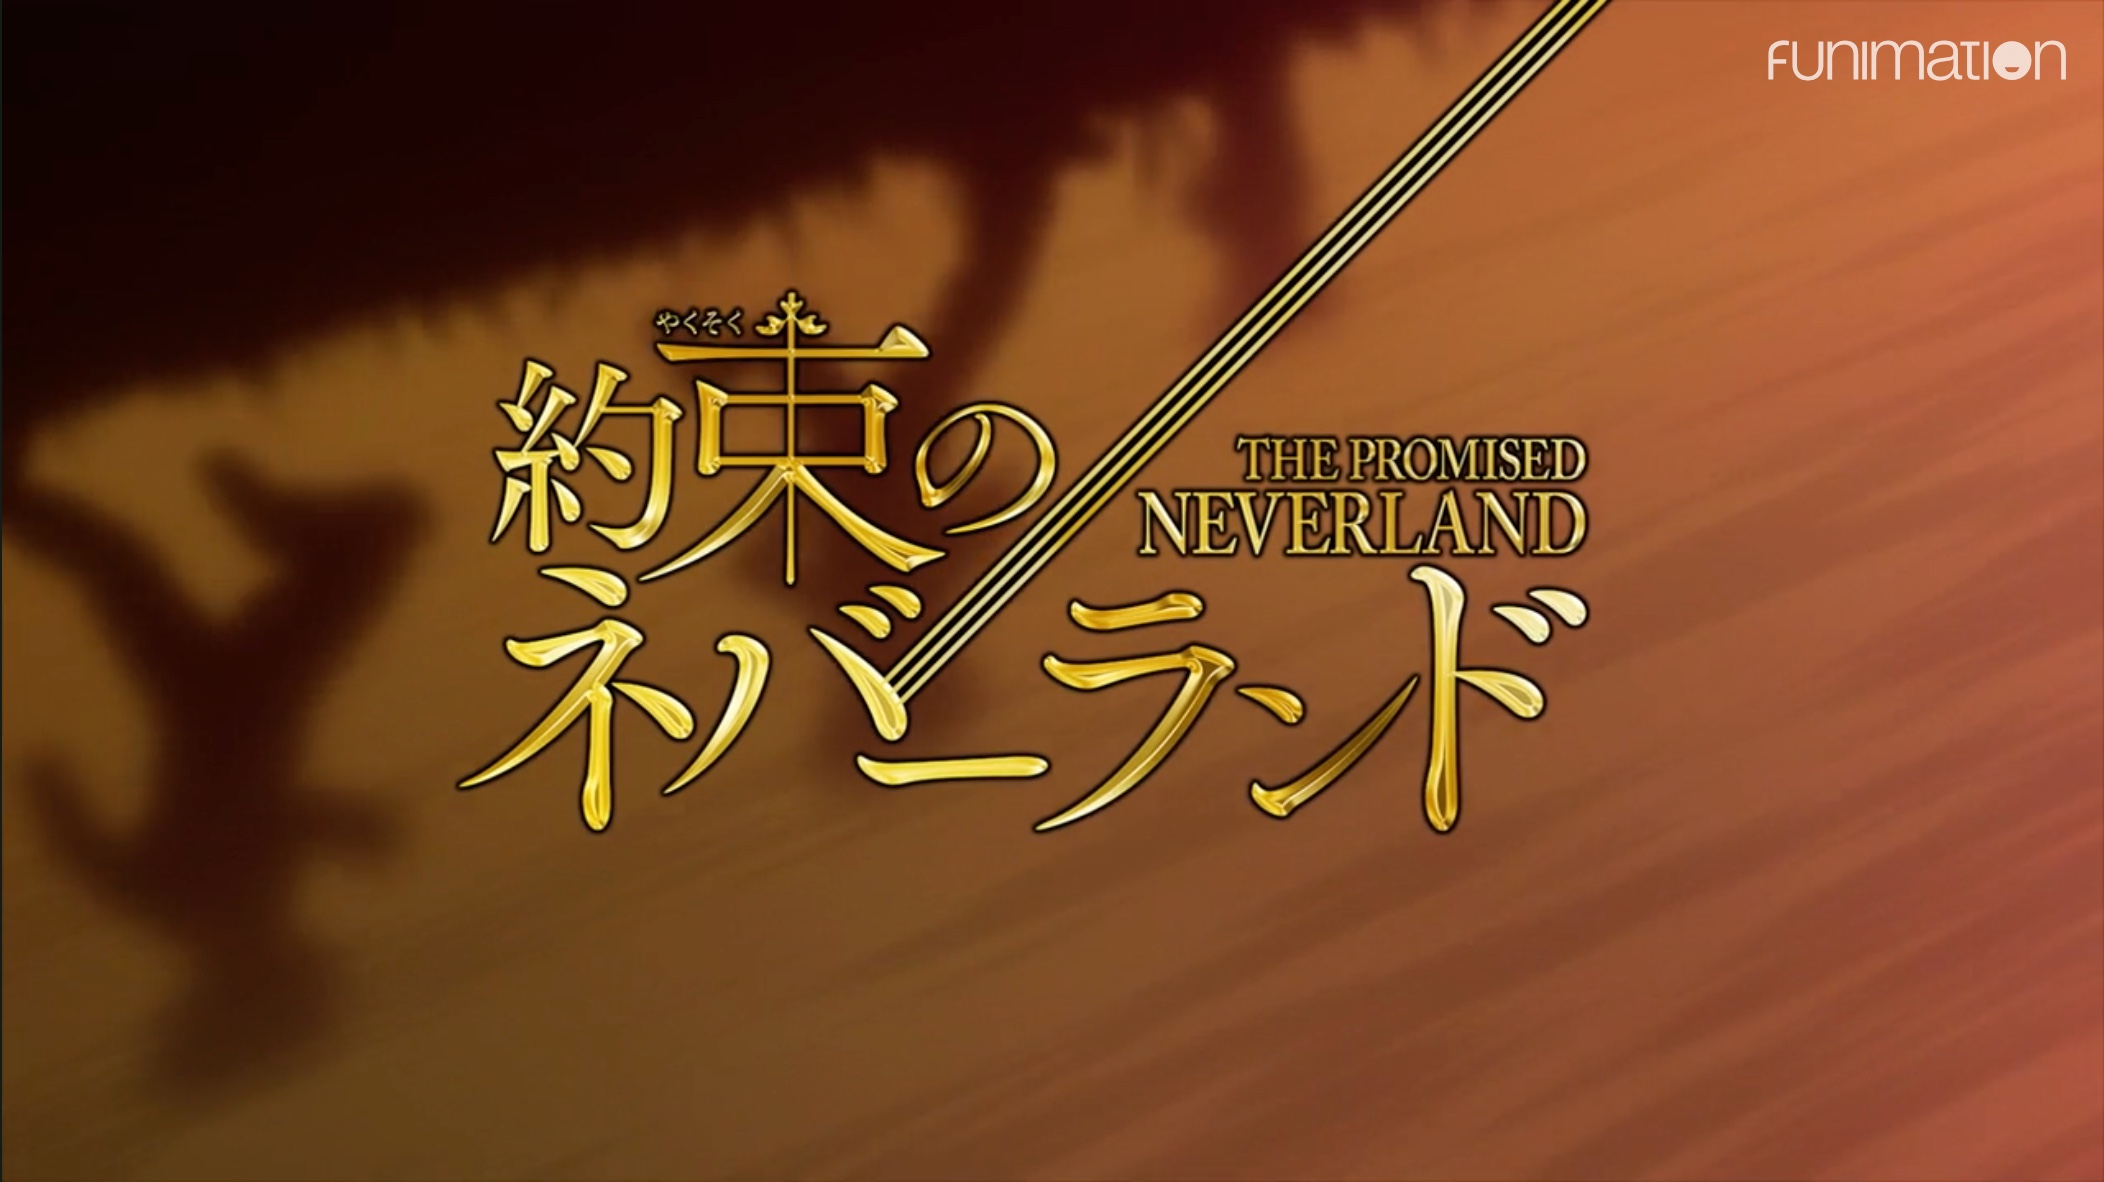 Background image for The Promised Neverland Season 2 Episode Guide